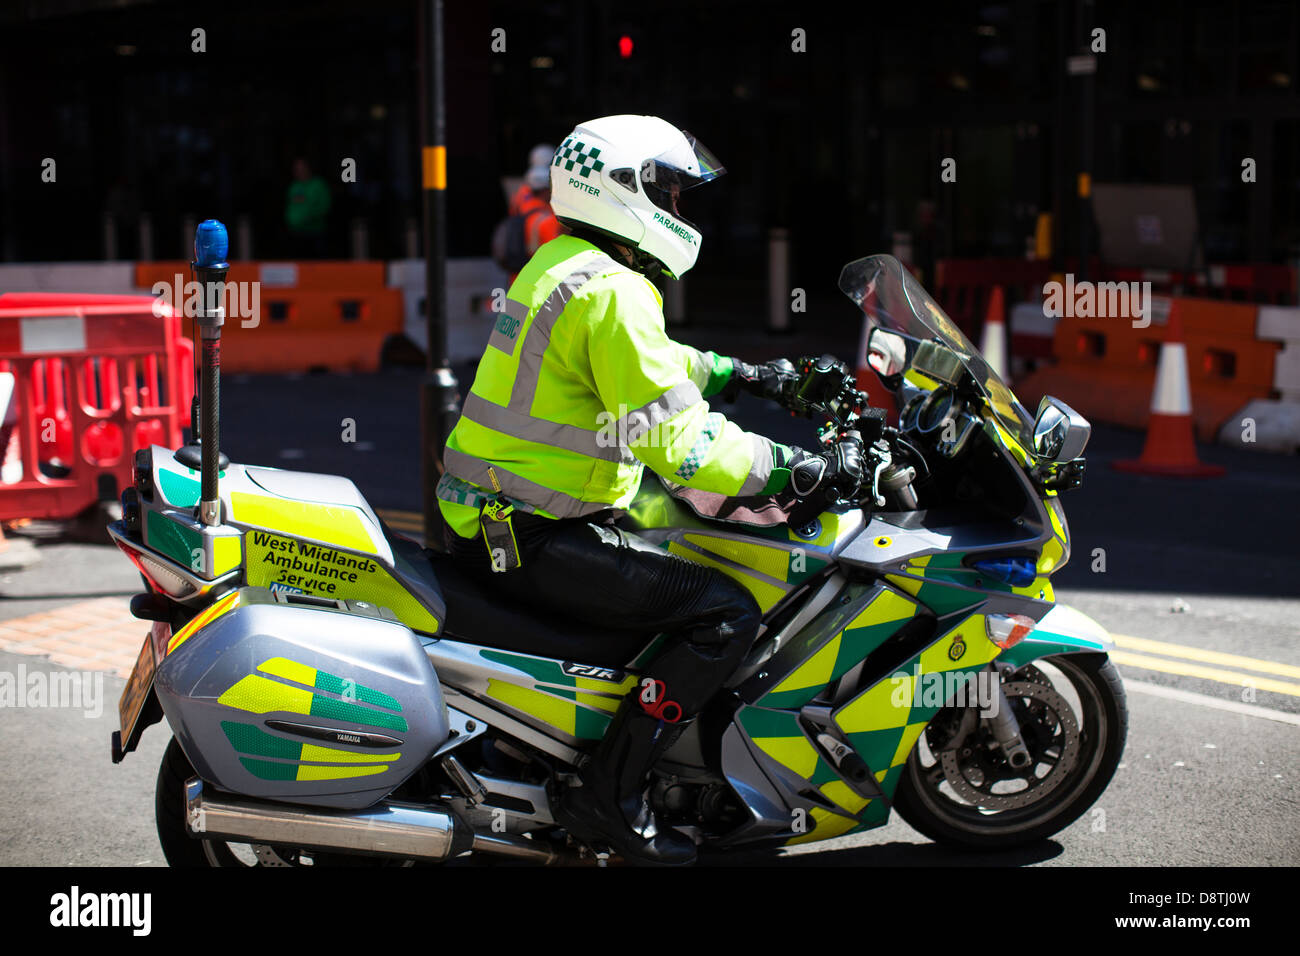 A West Midlands ambulance paramedic on motorcycle on the streets of Britain driving off left to right in full ambulance - Stock Image